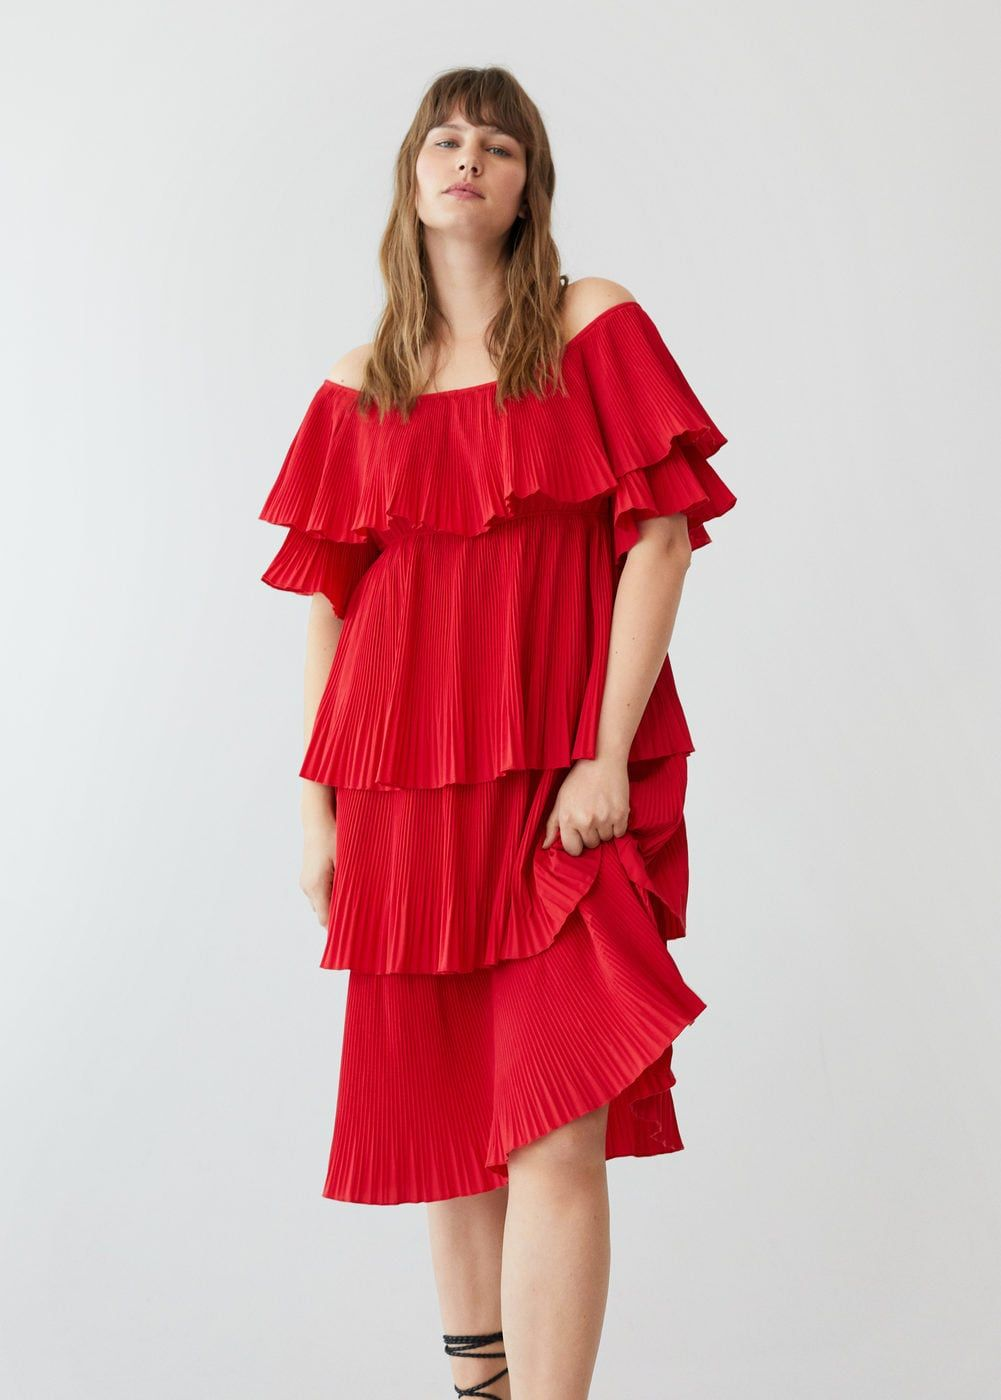 28 Casual Red Dresses Under $100 That I'm Obsessed With - casual red dresses 293971 1624940192486